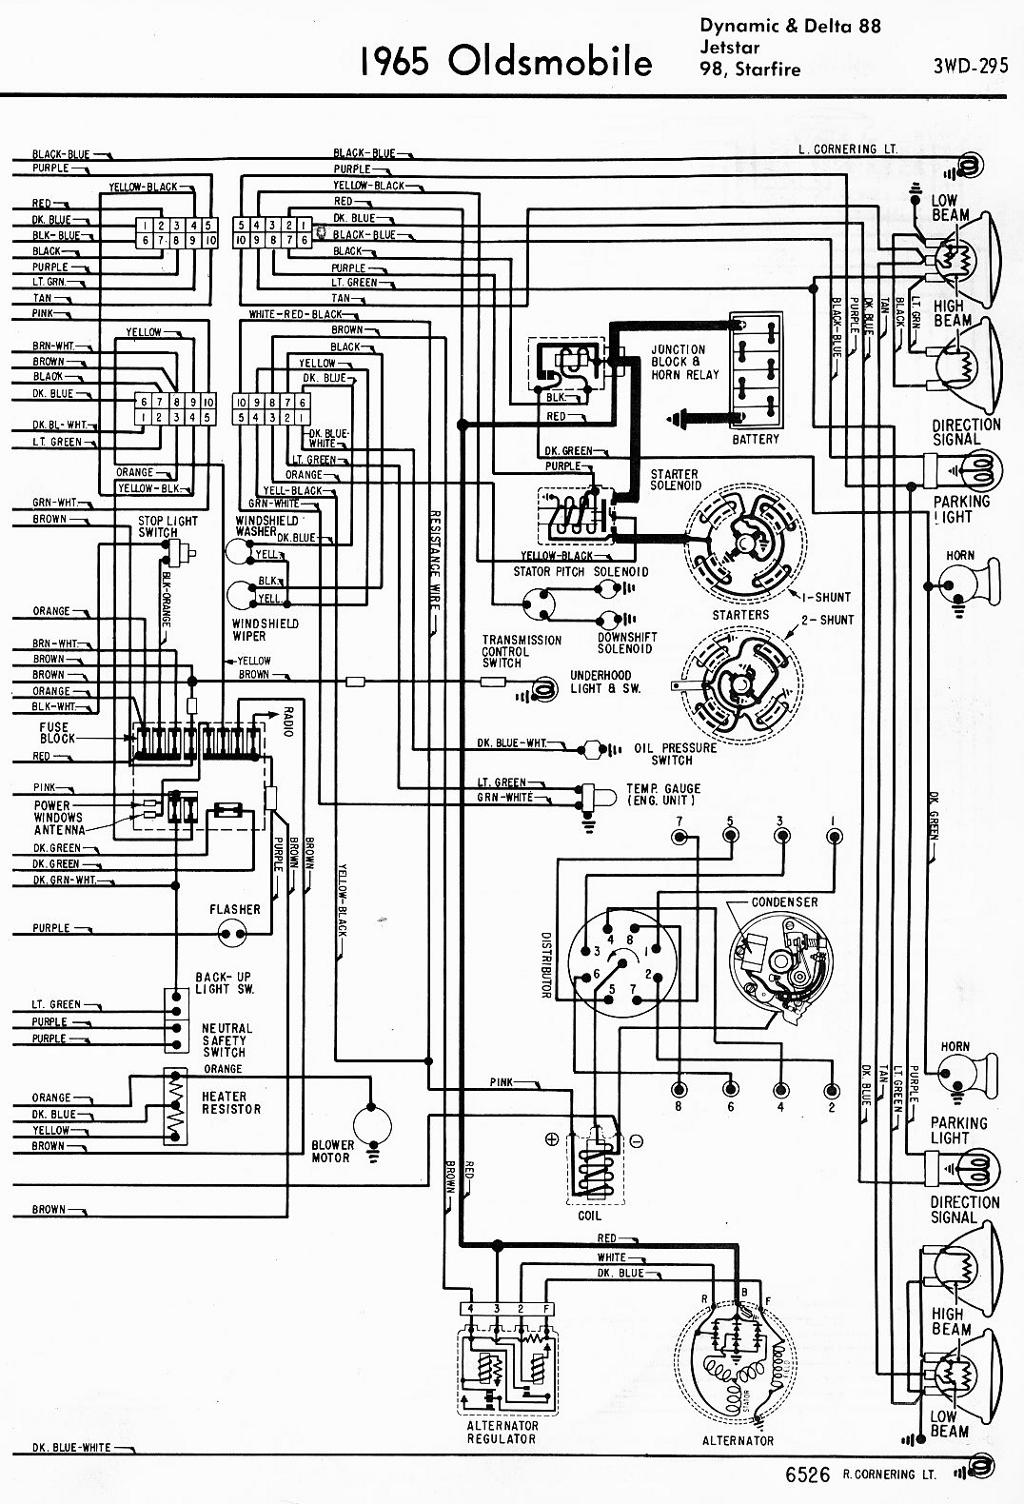 1995 Oldsmobile Silhouette Wiring Diagram Detailed Schematics Ac 88 Electrical Diagrams Chevy Monte Carlo